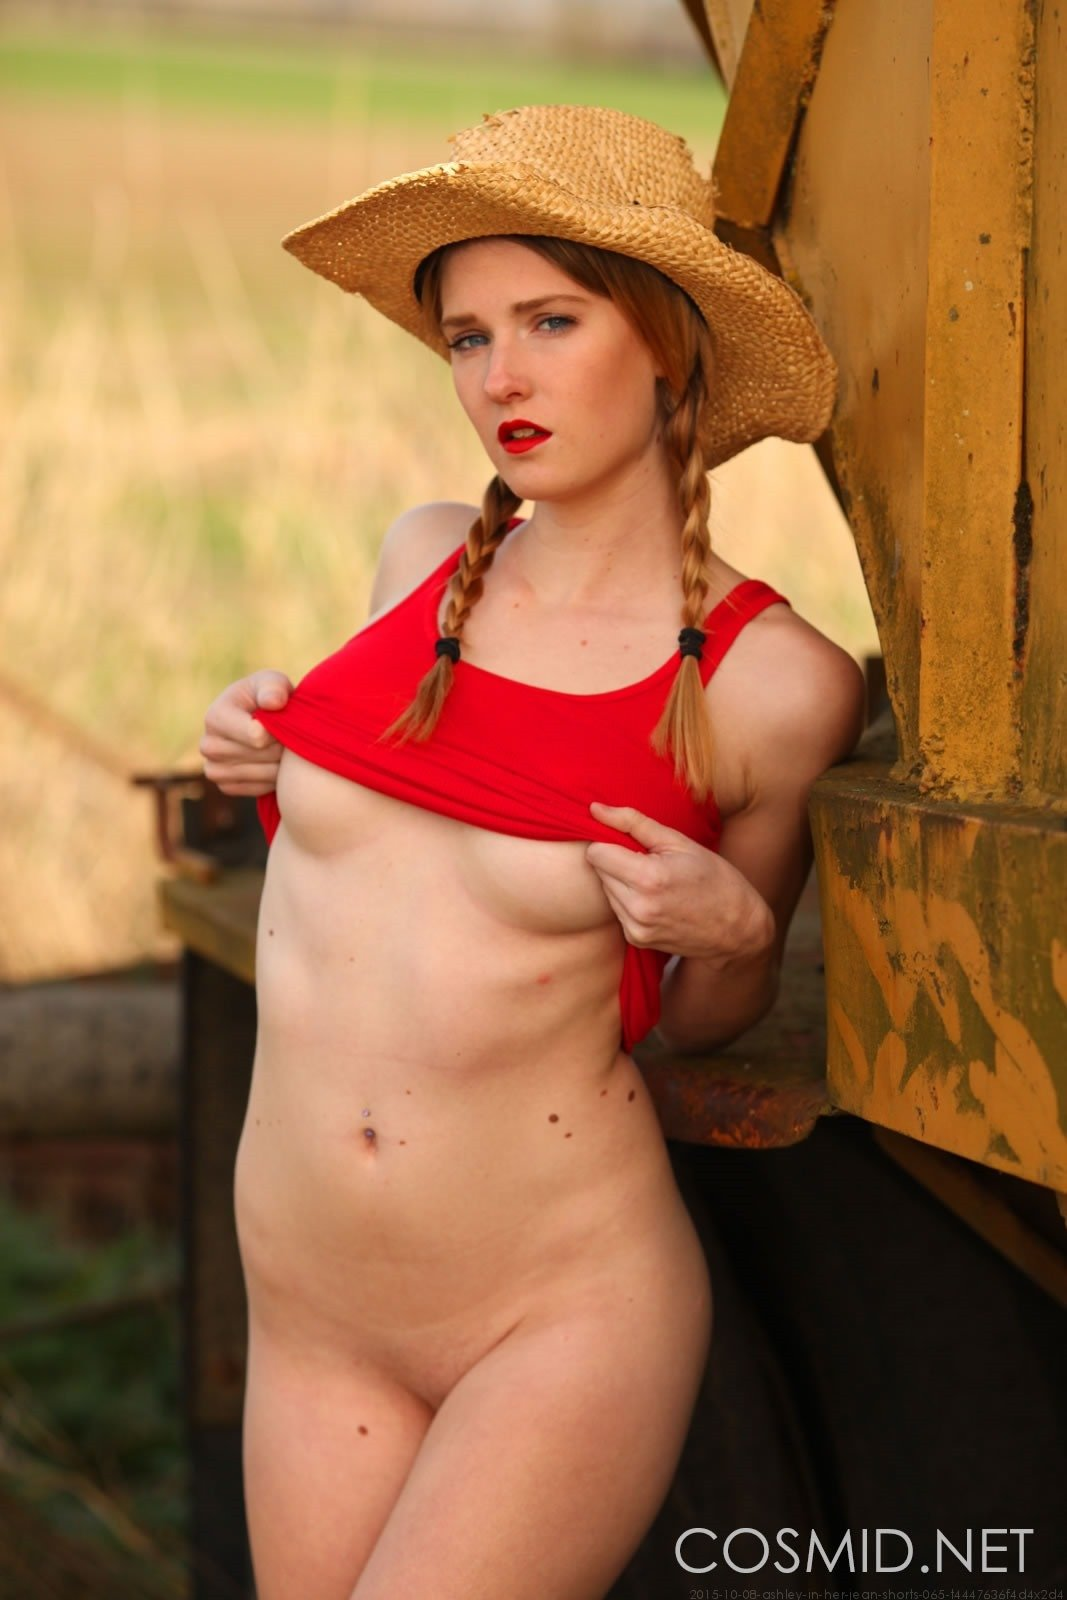 Ashley Farmers Daughter - Fine Hotties - Hot Naked Girls ...